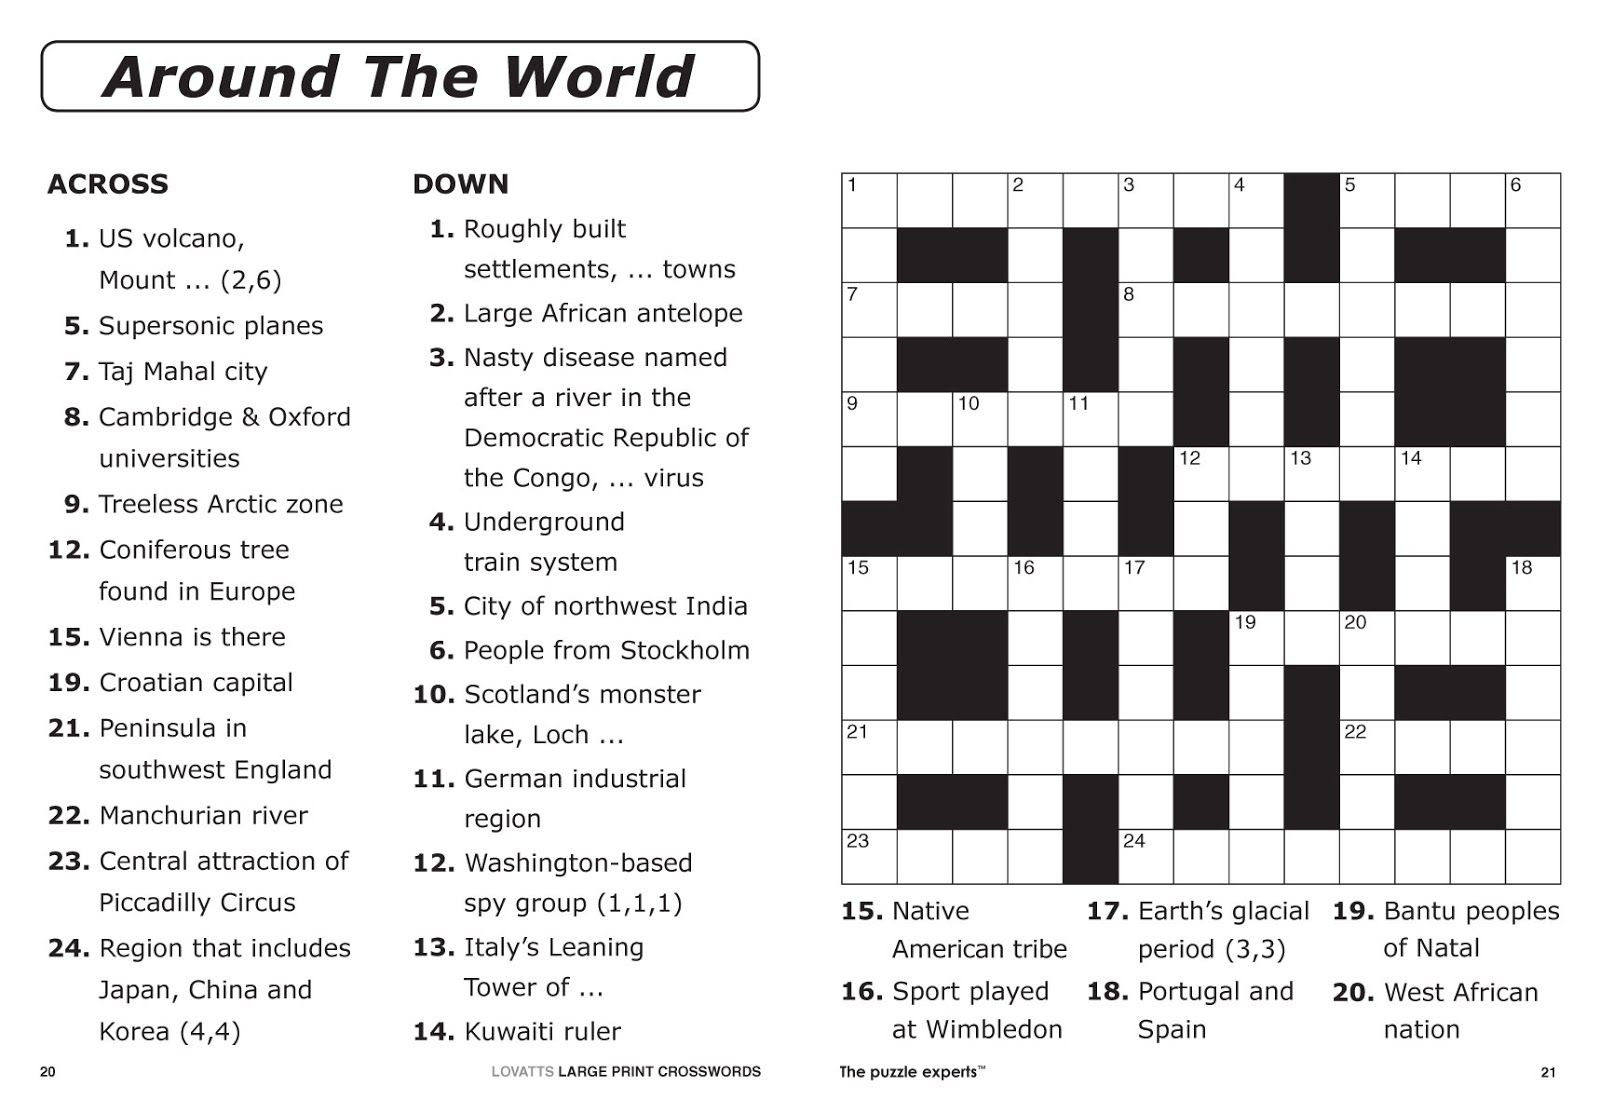 Free Printable Large Print Crossword Puzzles | M3U8 - Printable Crossword Puzzles For 9 Year Olds